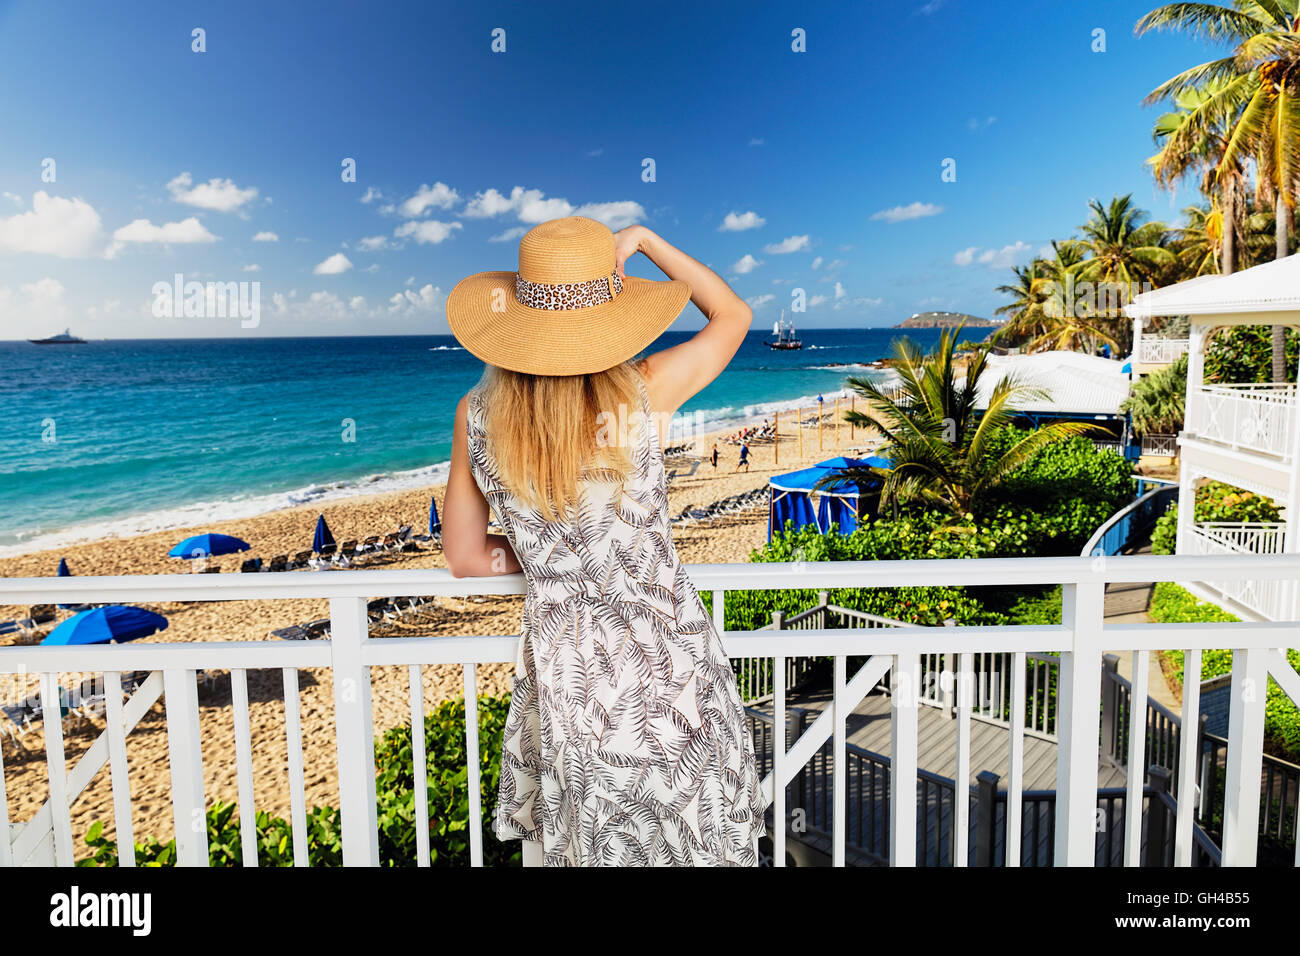 Backside View of a Woman in a Summer Dress and Hat Looking Out to a Beach Resort From a Balcony - Stock Image